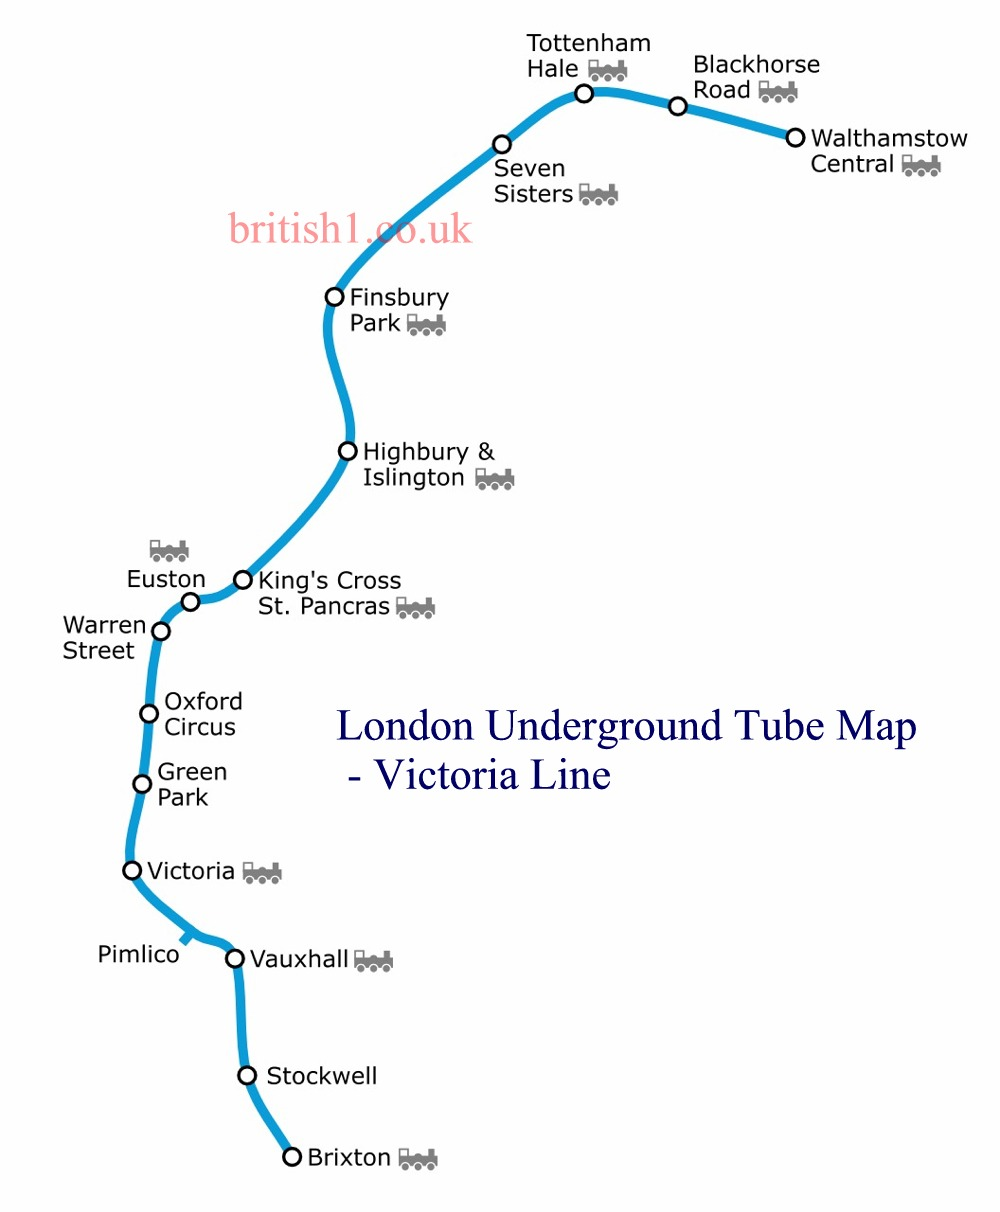 London Underground Tube Map - Victoria Line